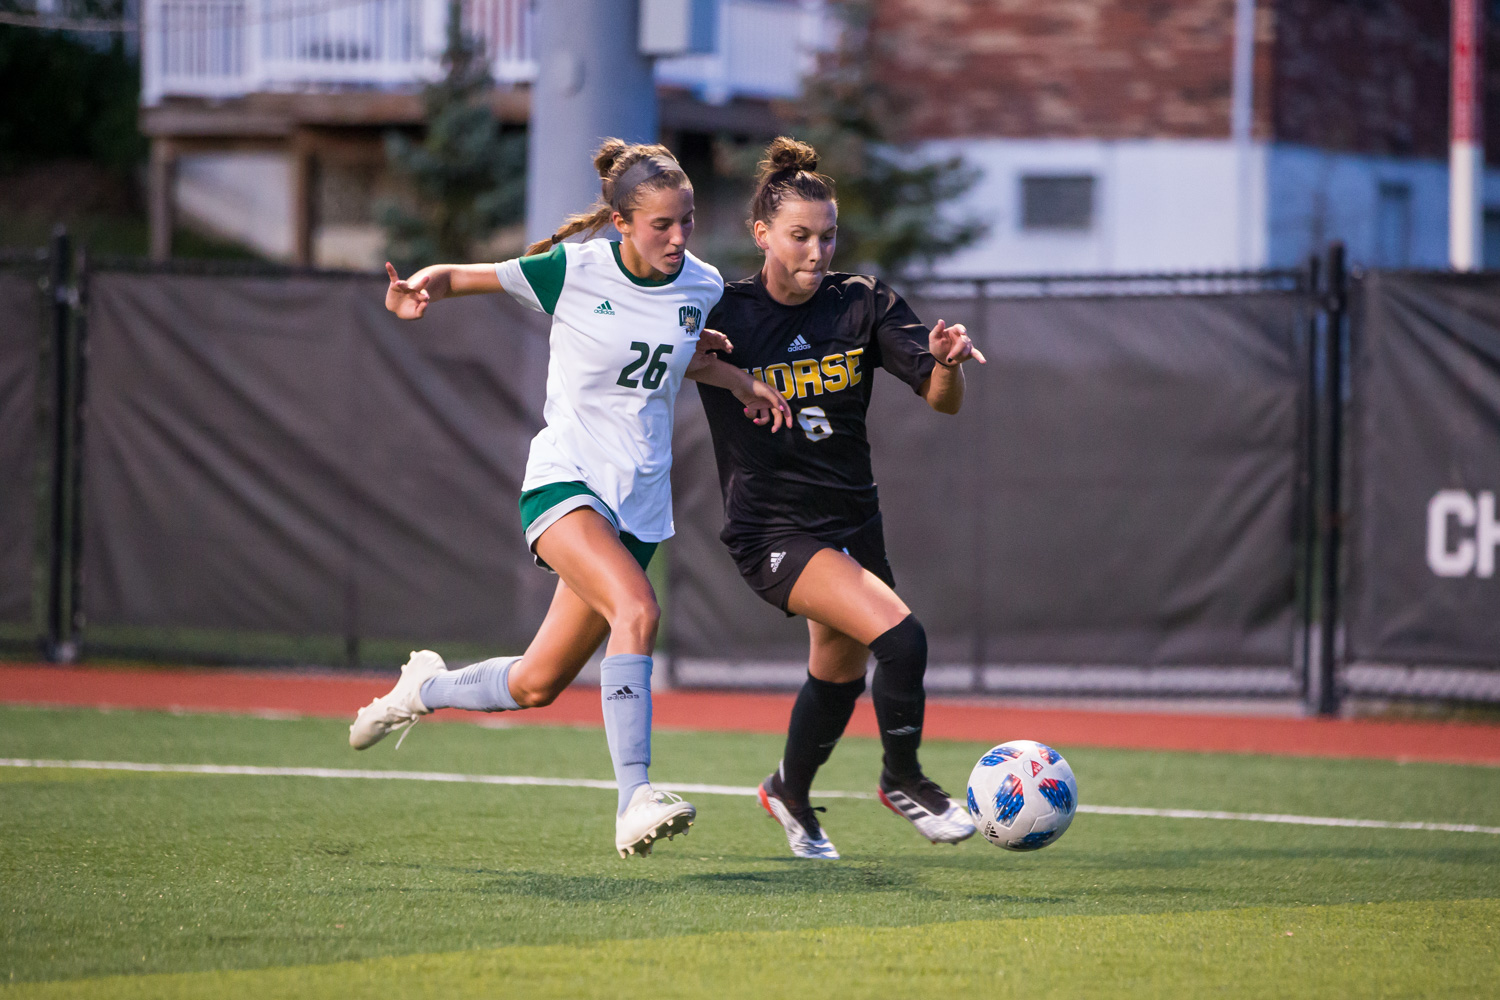 Ally+Perkins+%286%29+drives+toward+the+goal+during+the+game+against+Ohio+University.+The+Norse+lost+1-0+to+Ohio+University.